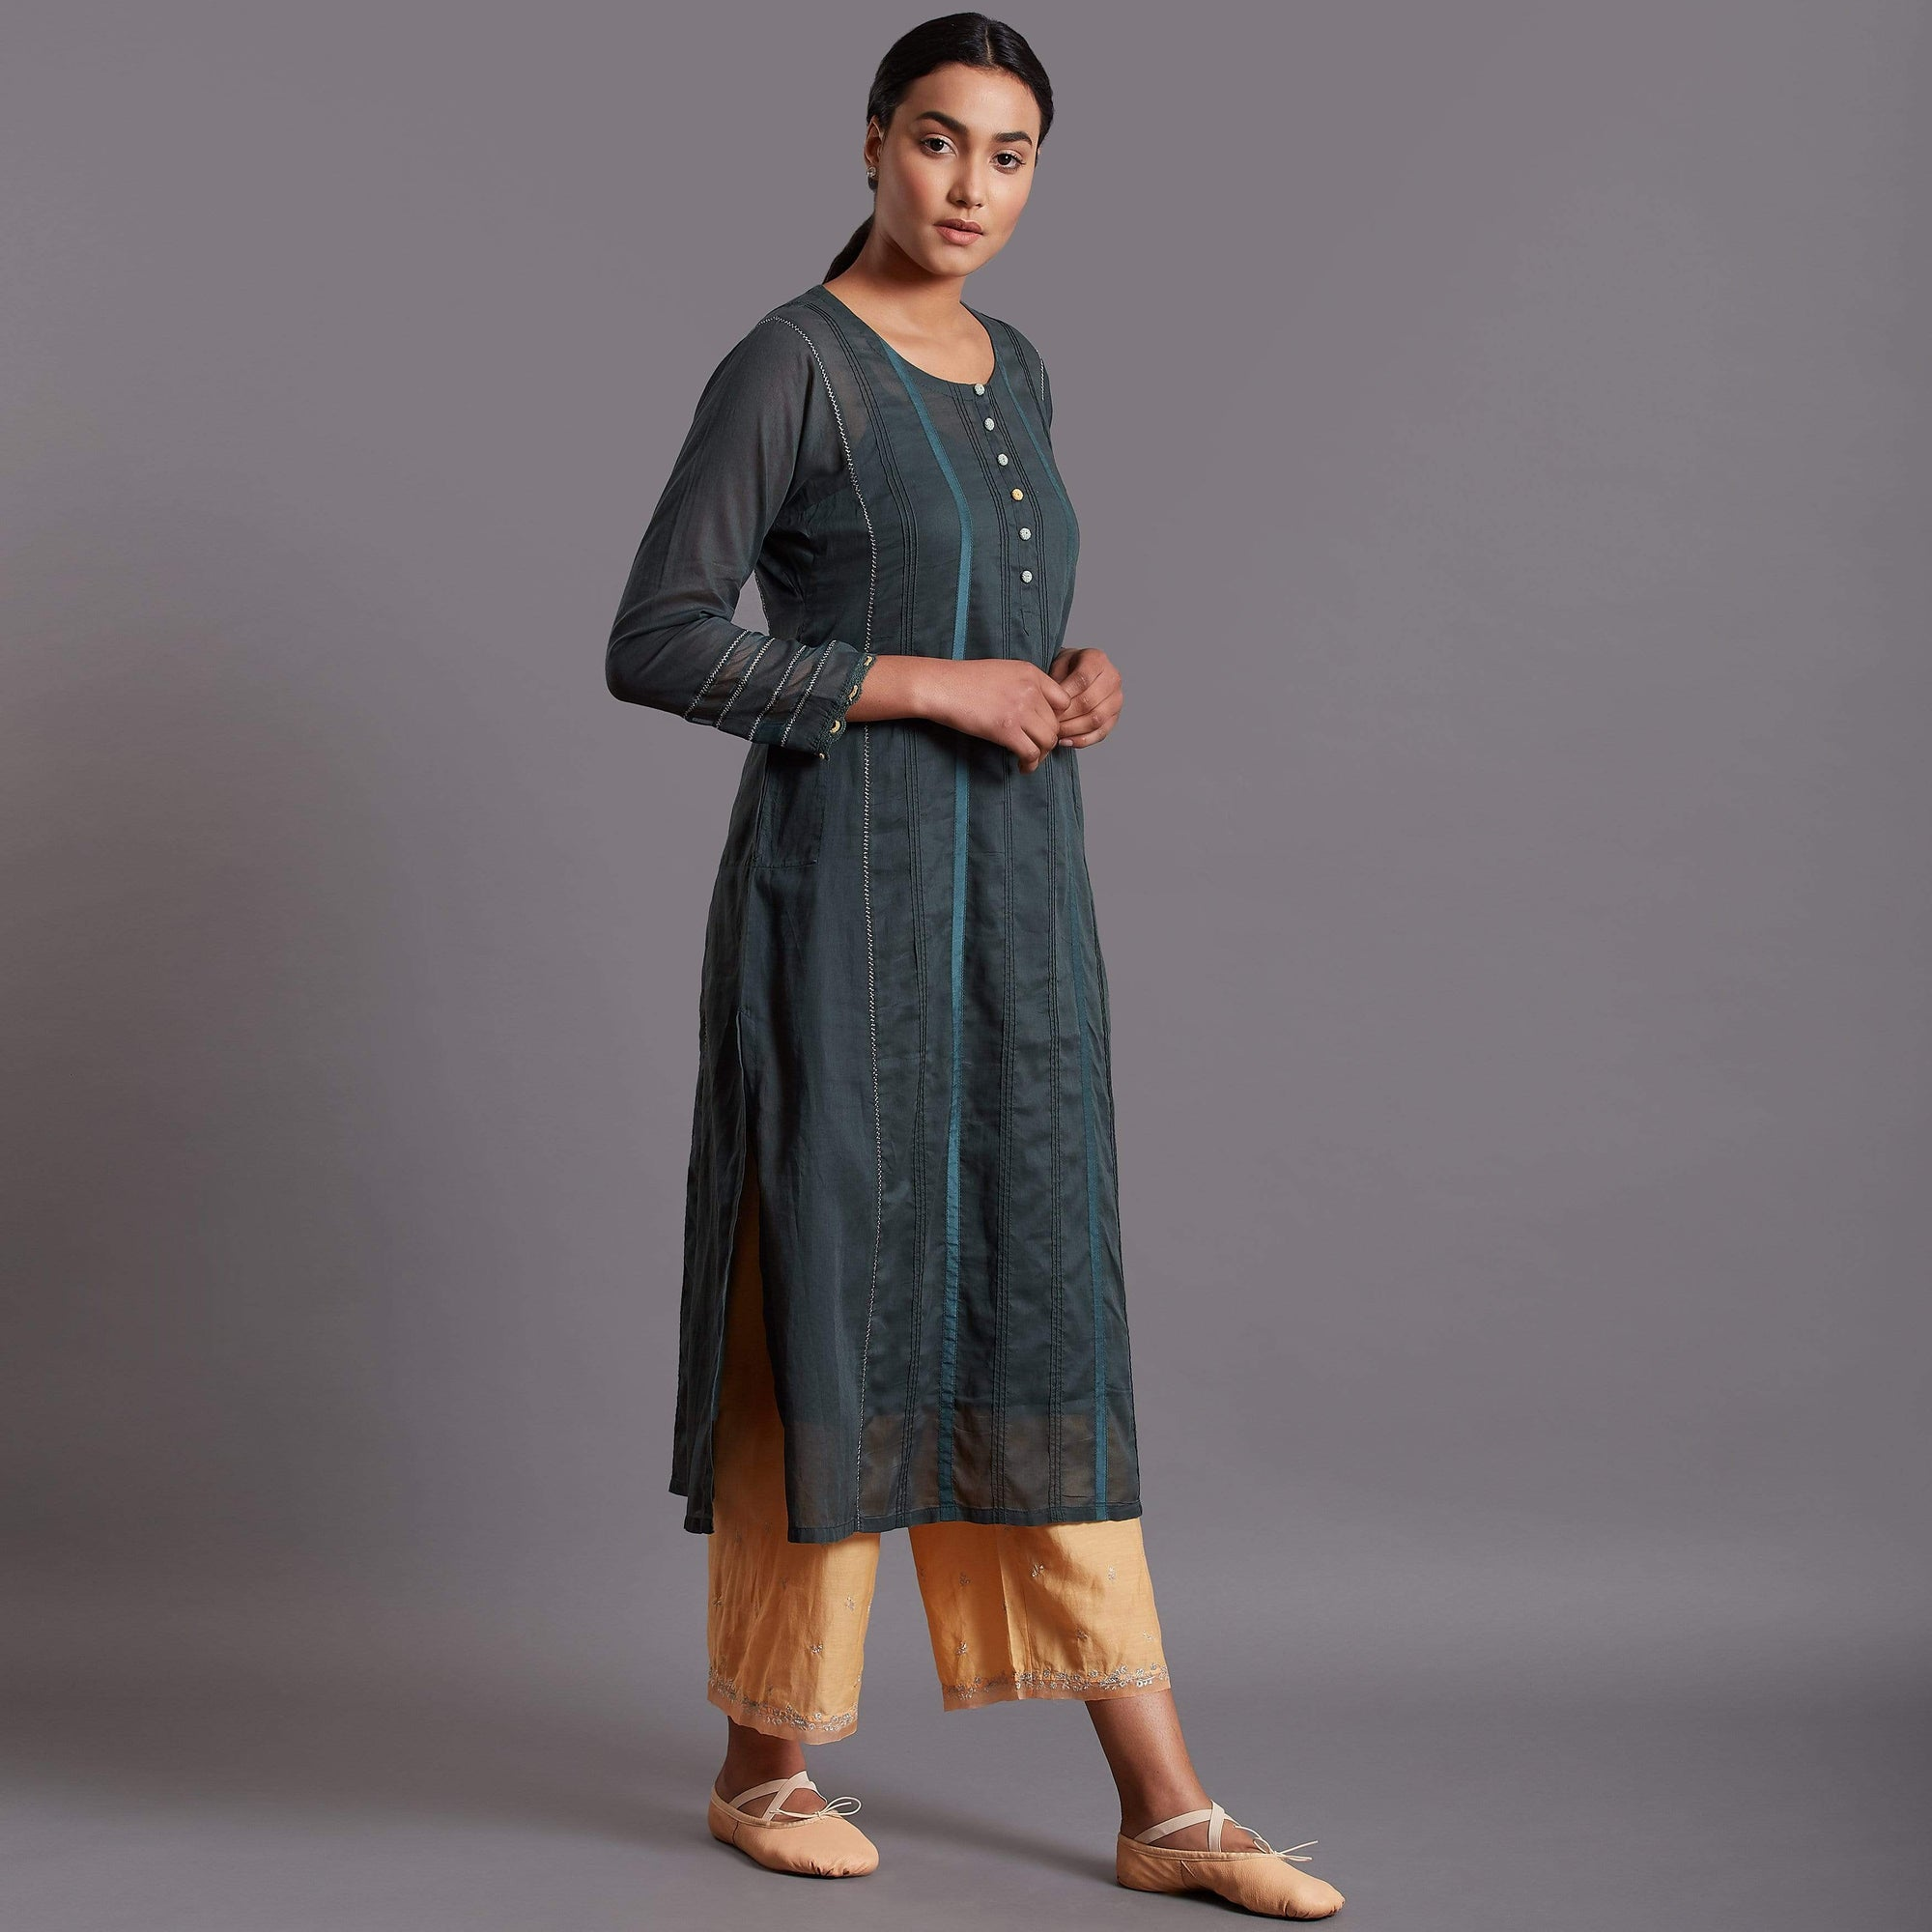 Shades of India Kurtas Cotton kurta with fabric manipulation